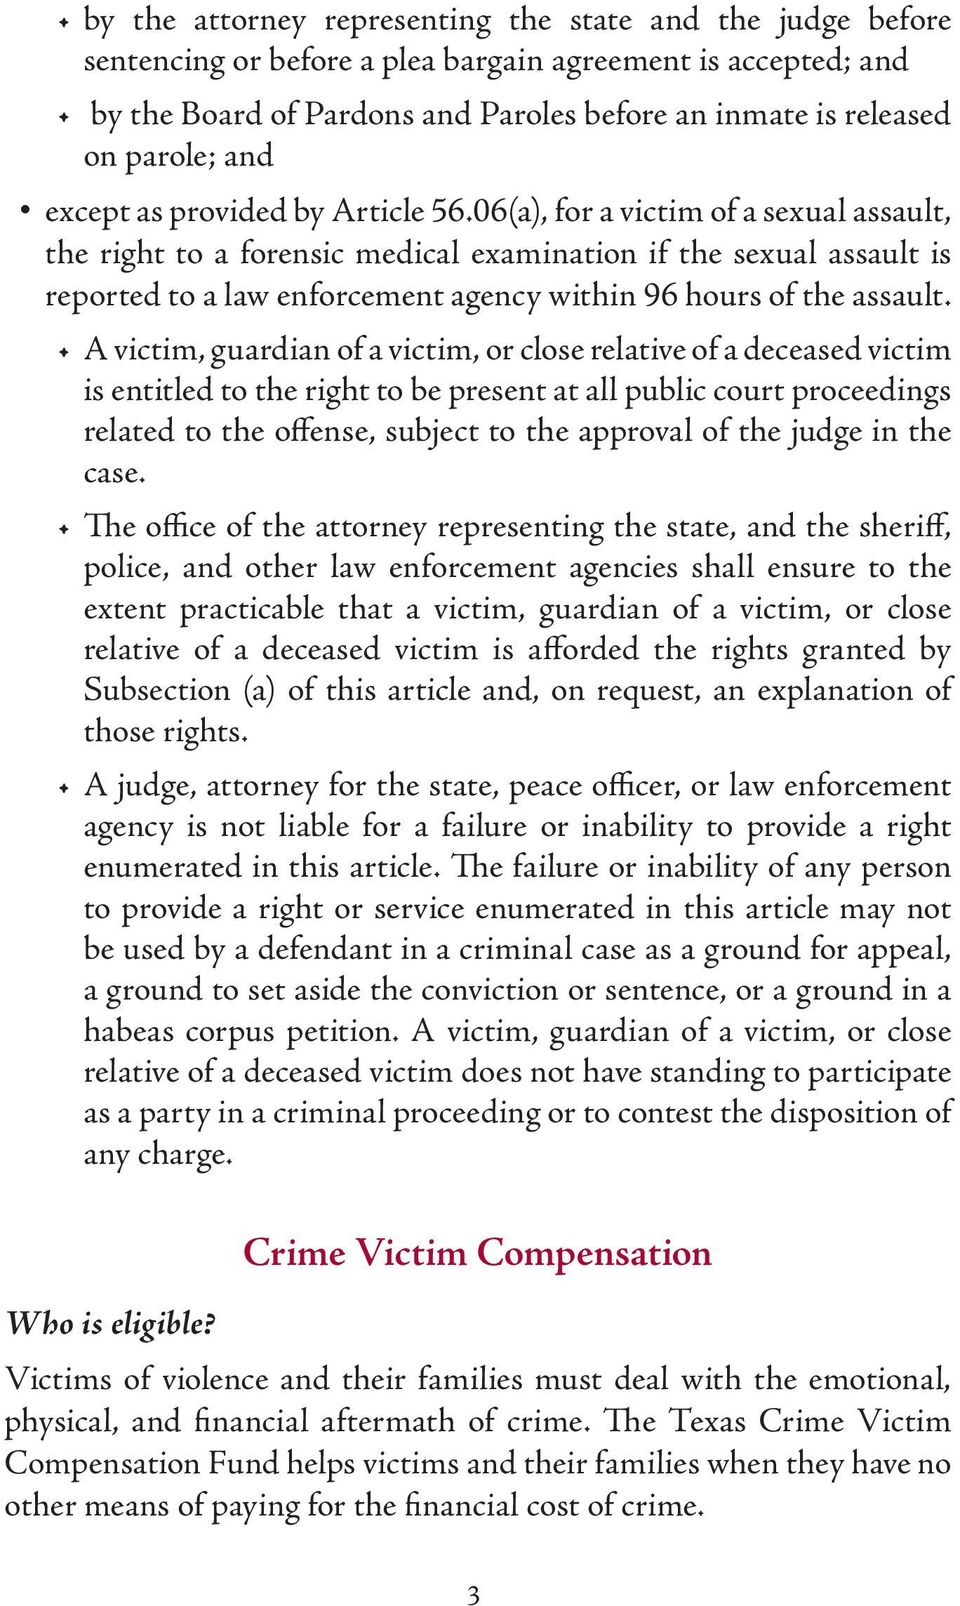 06(a), for a victim of a sexual assault, the right to a forensic medical examination if the sexual assault is reported to a law enforcement agency within 96 hours of the assault.